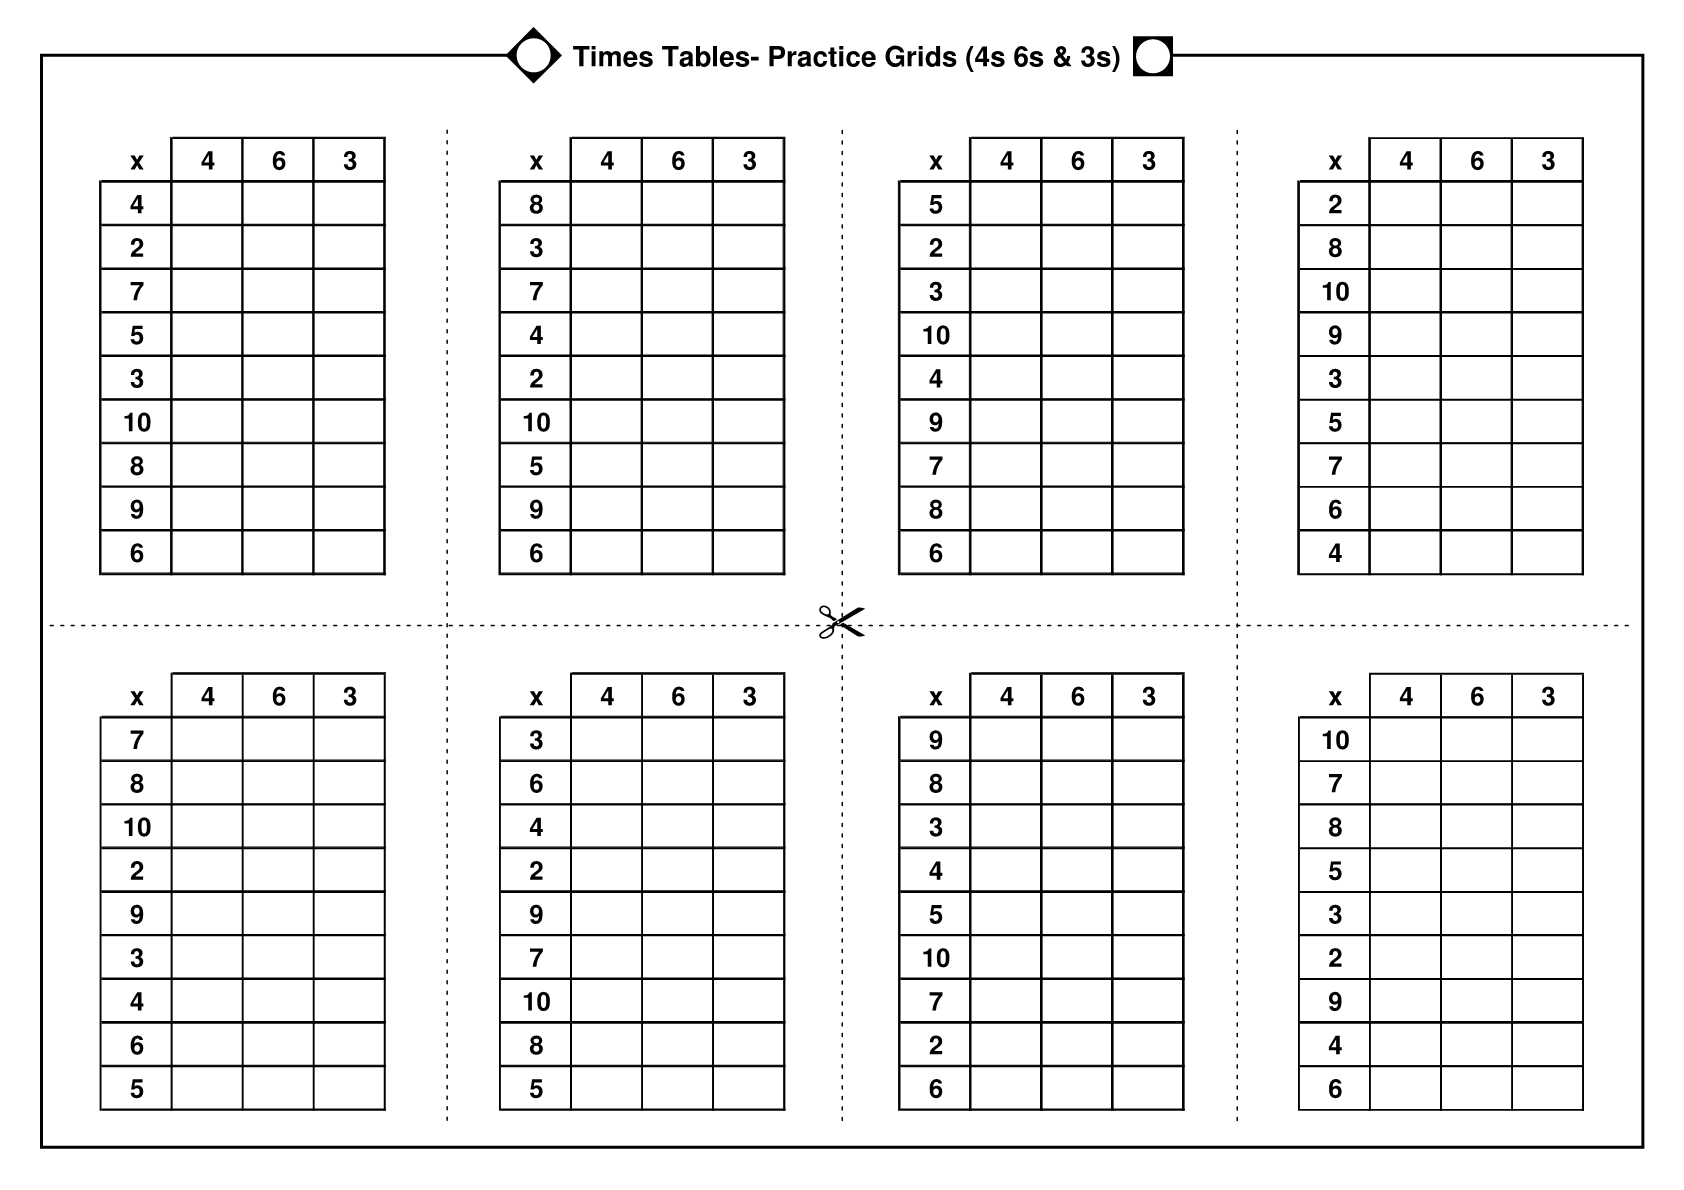 Times Tables Practice Grids